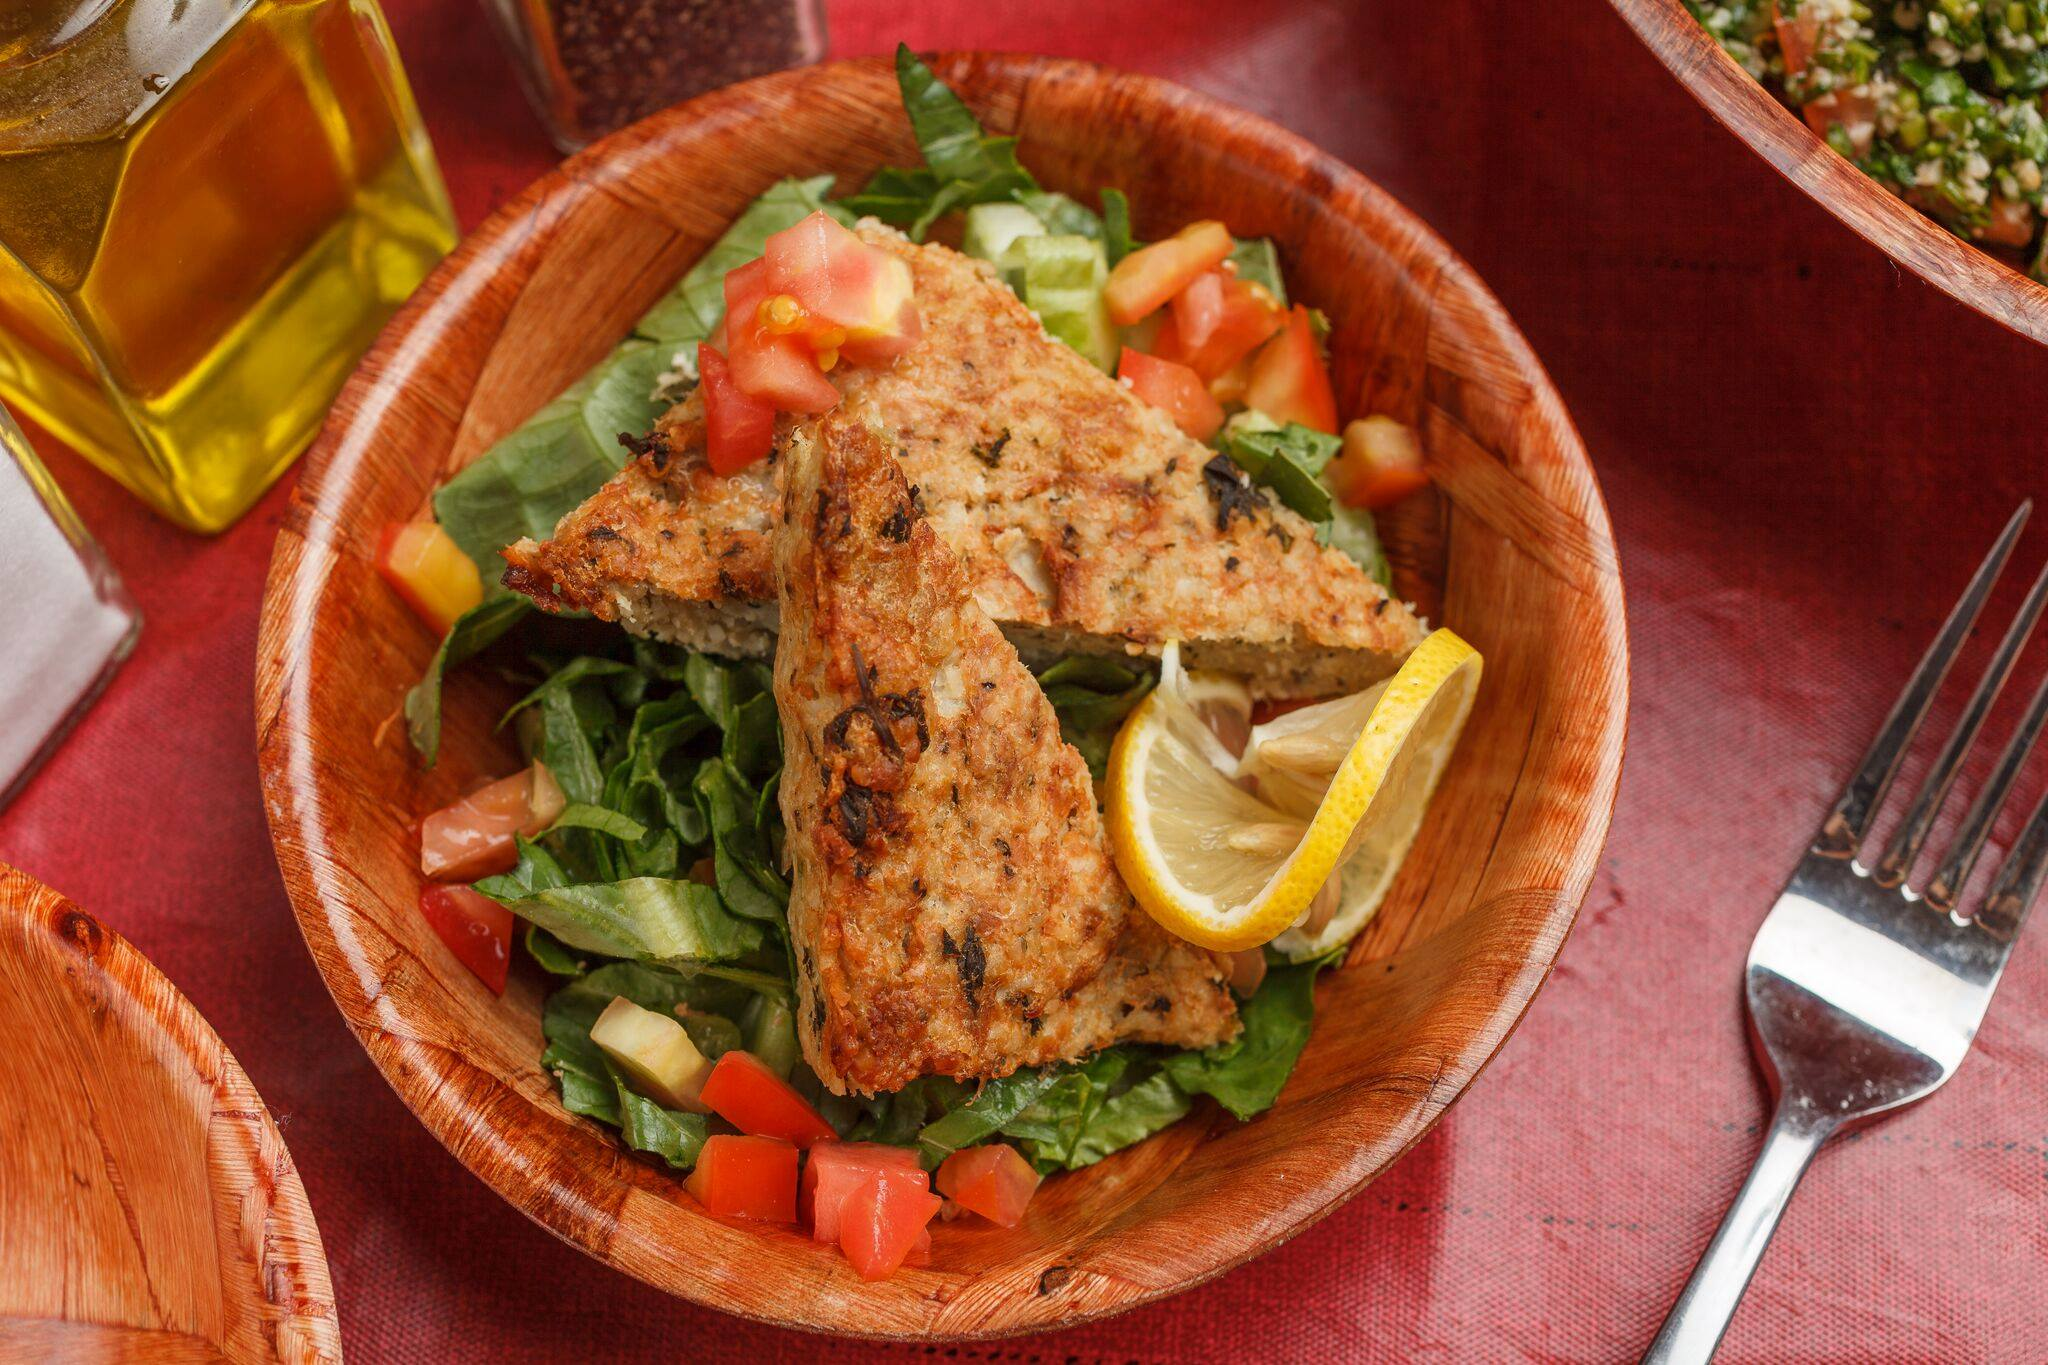 Don't sweat dinner tonight-order takeout from Tabouleh